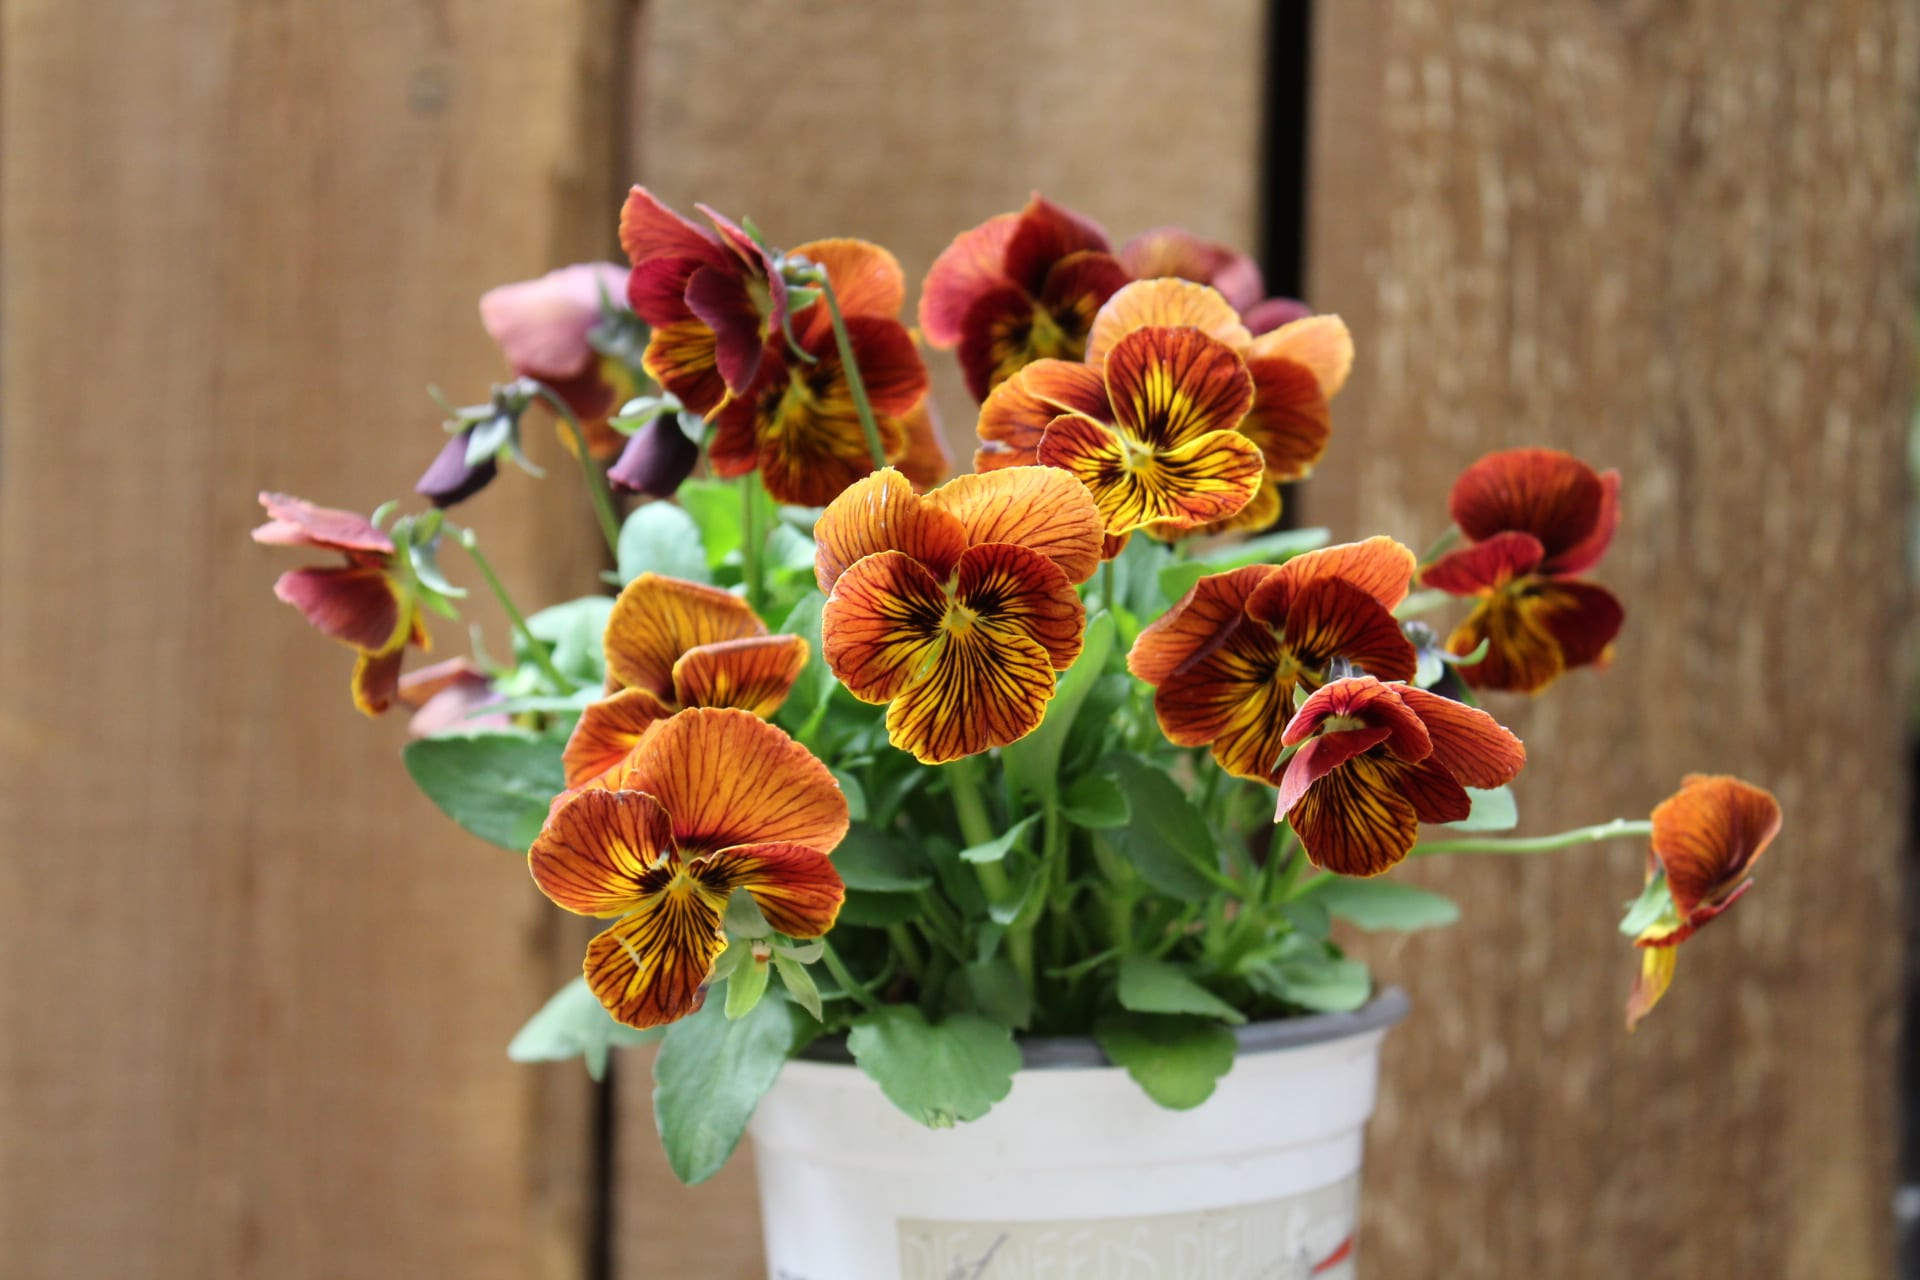 Violas at City Floral Greenhouse and Garden Center